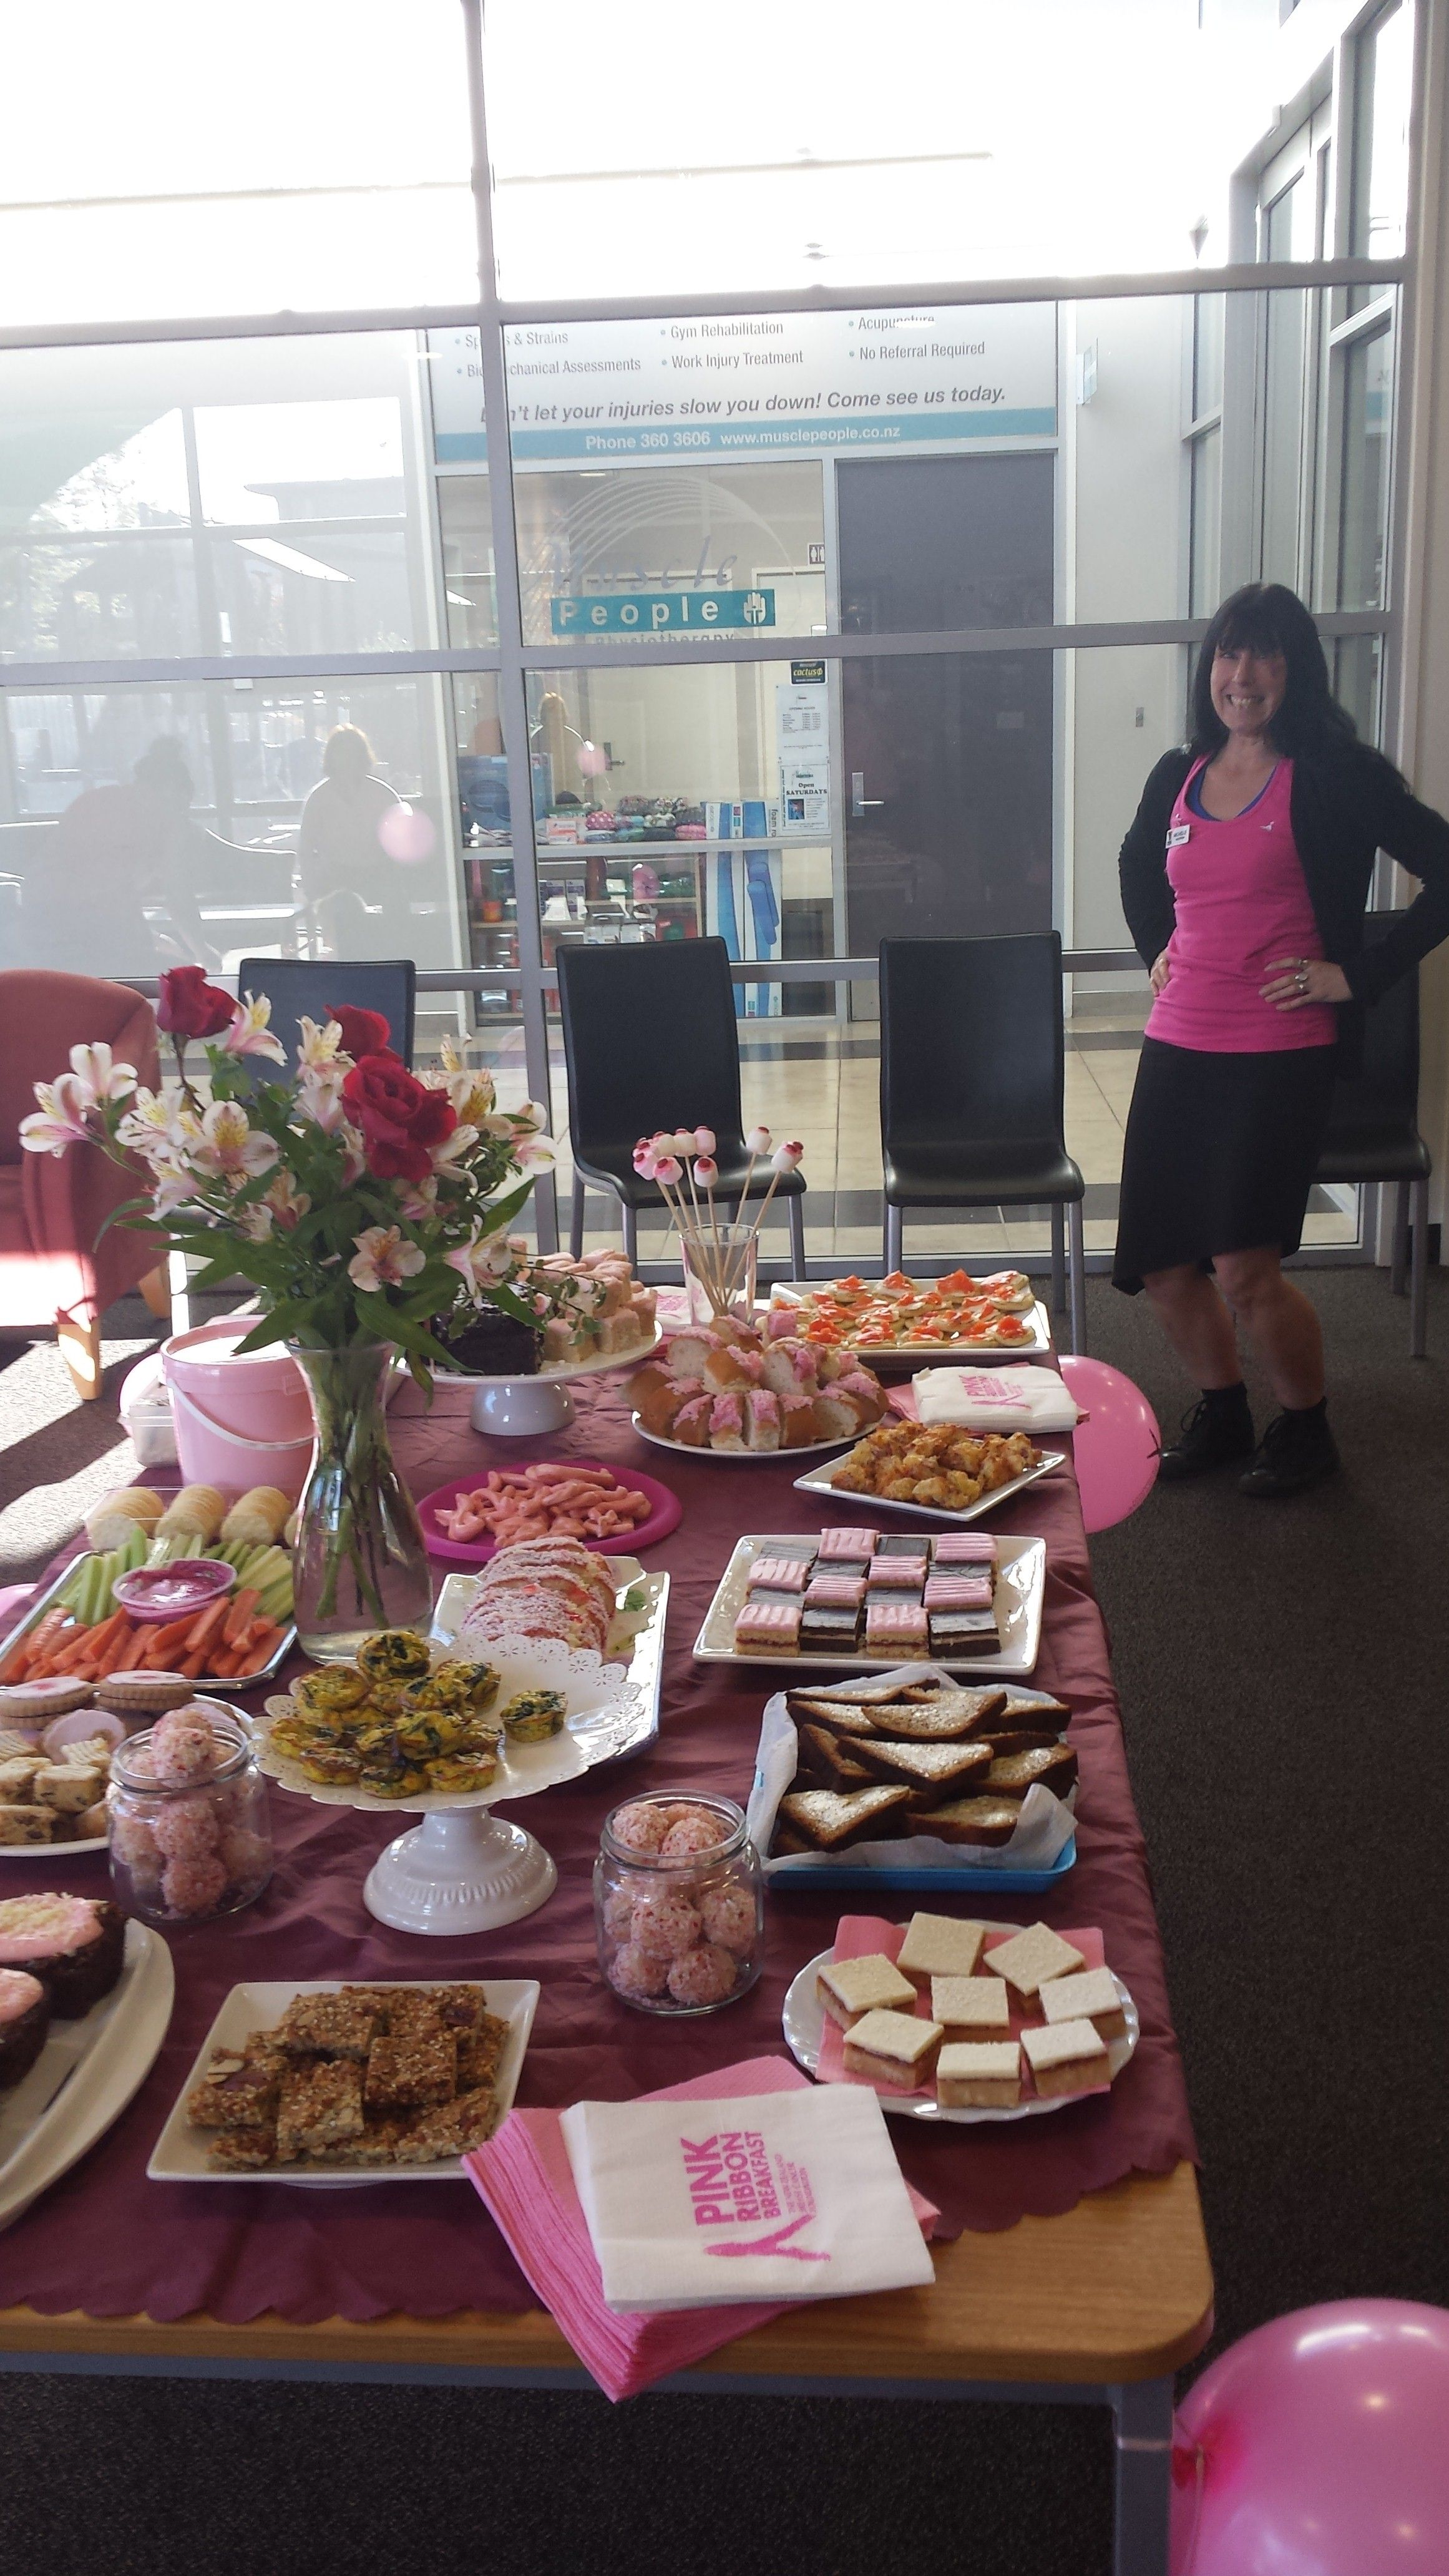 Taryn had quite a spread at her Breakfast. Loving the serviettes!